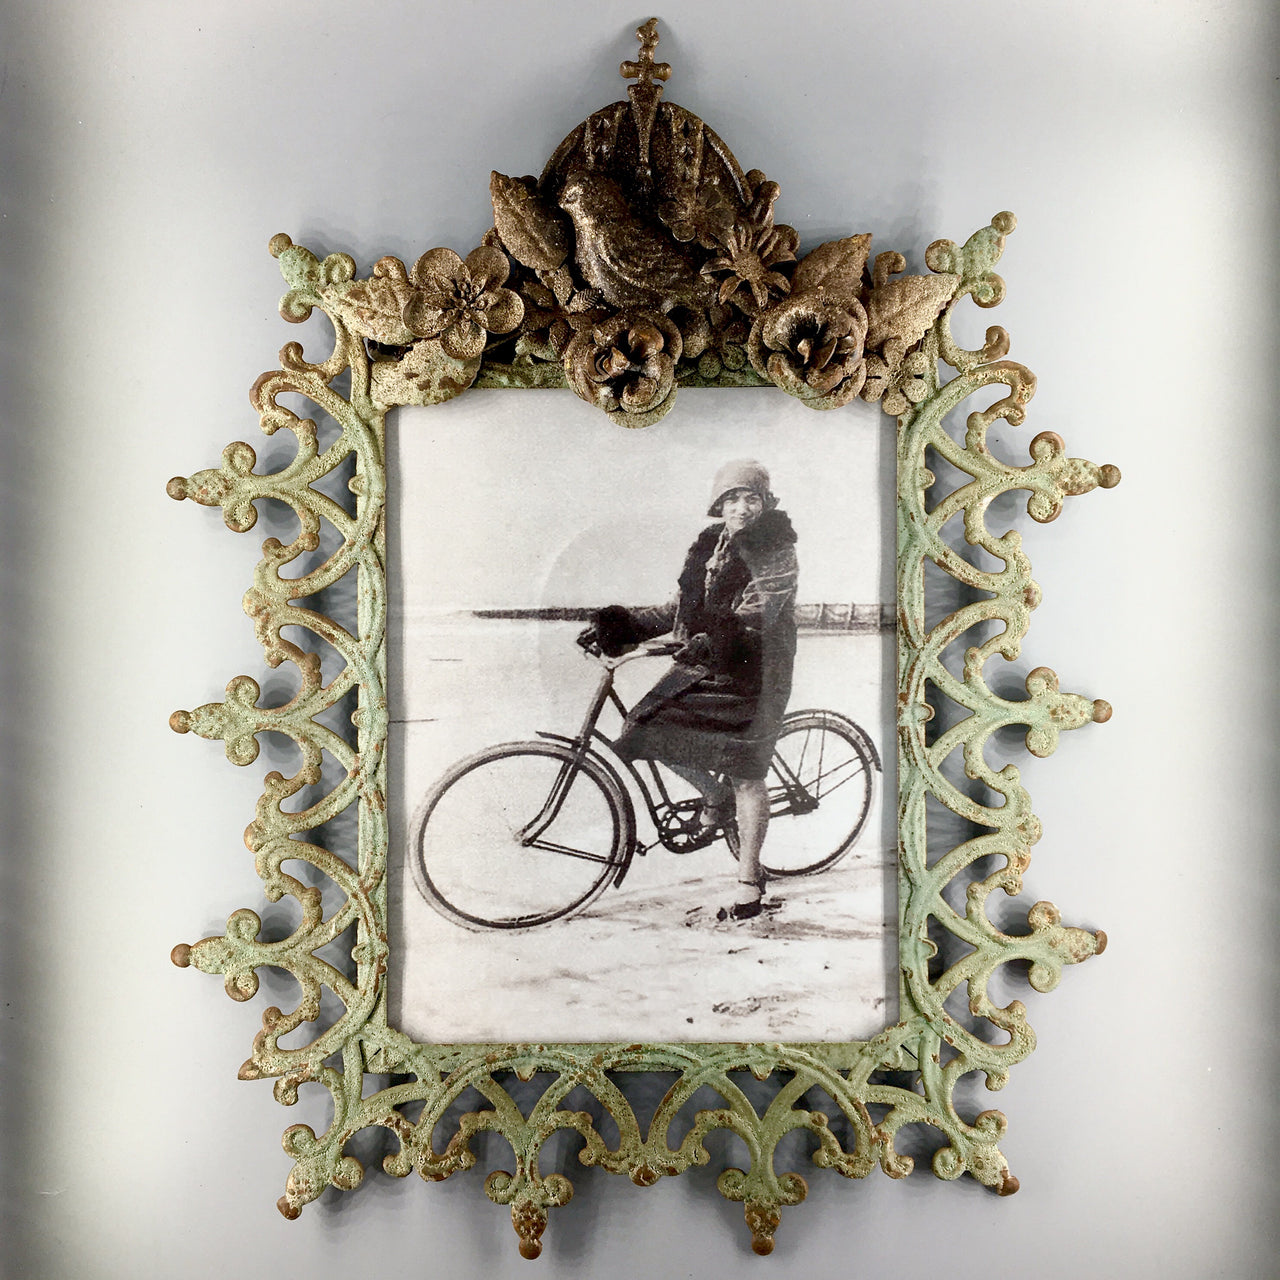 Abbey Wall Frame Vintage Style Rustic Metal